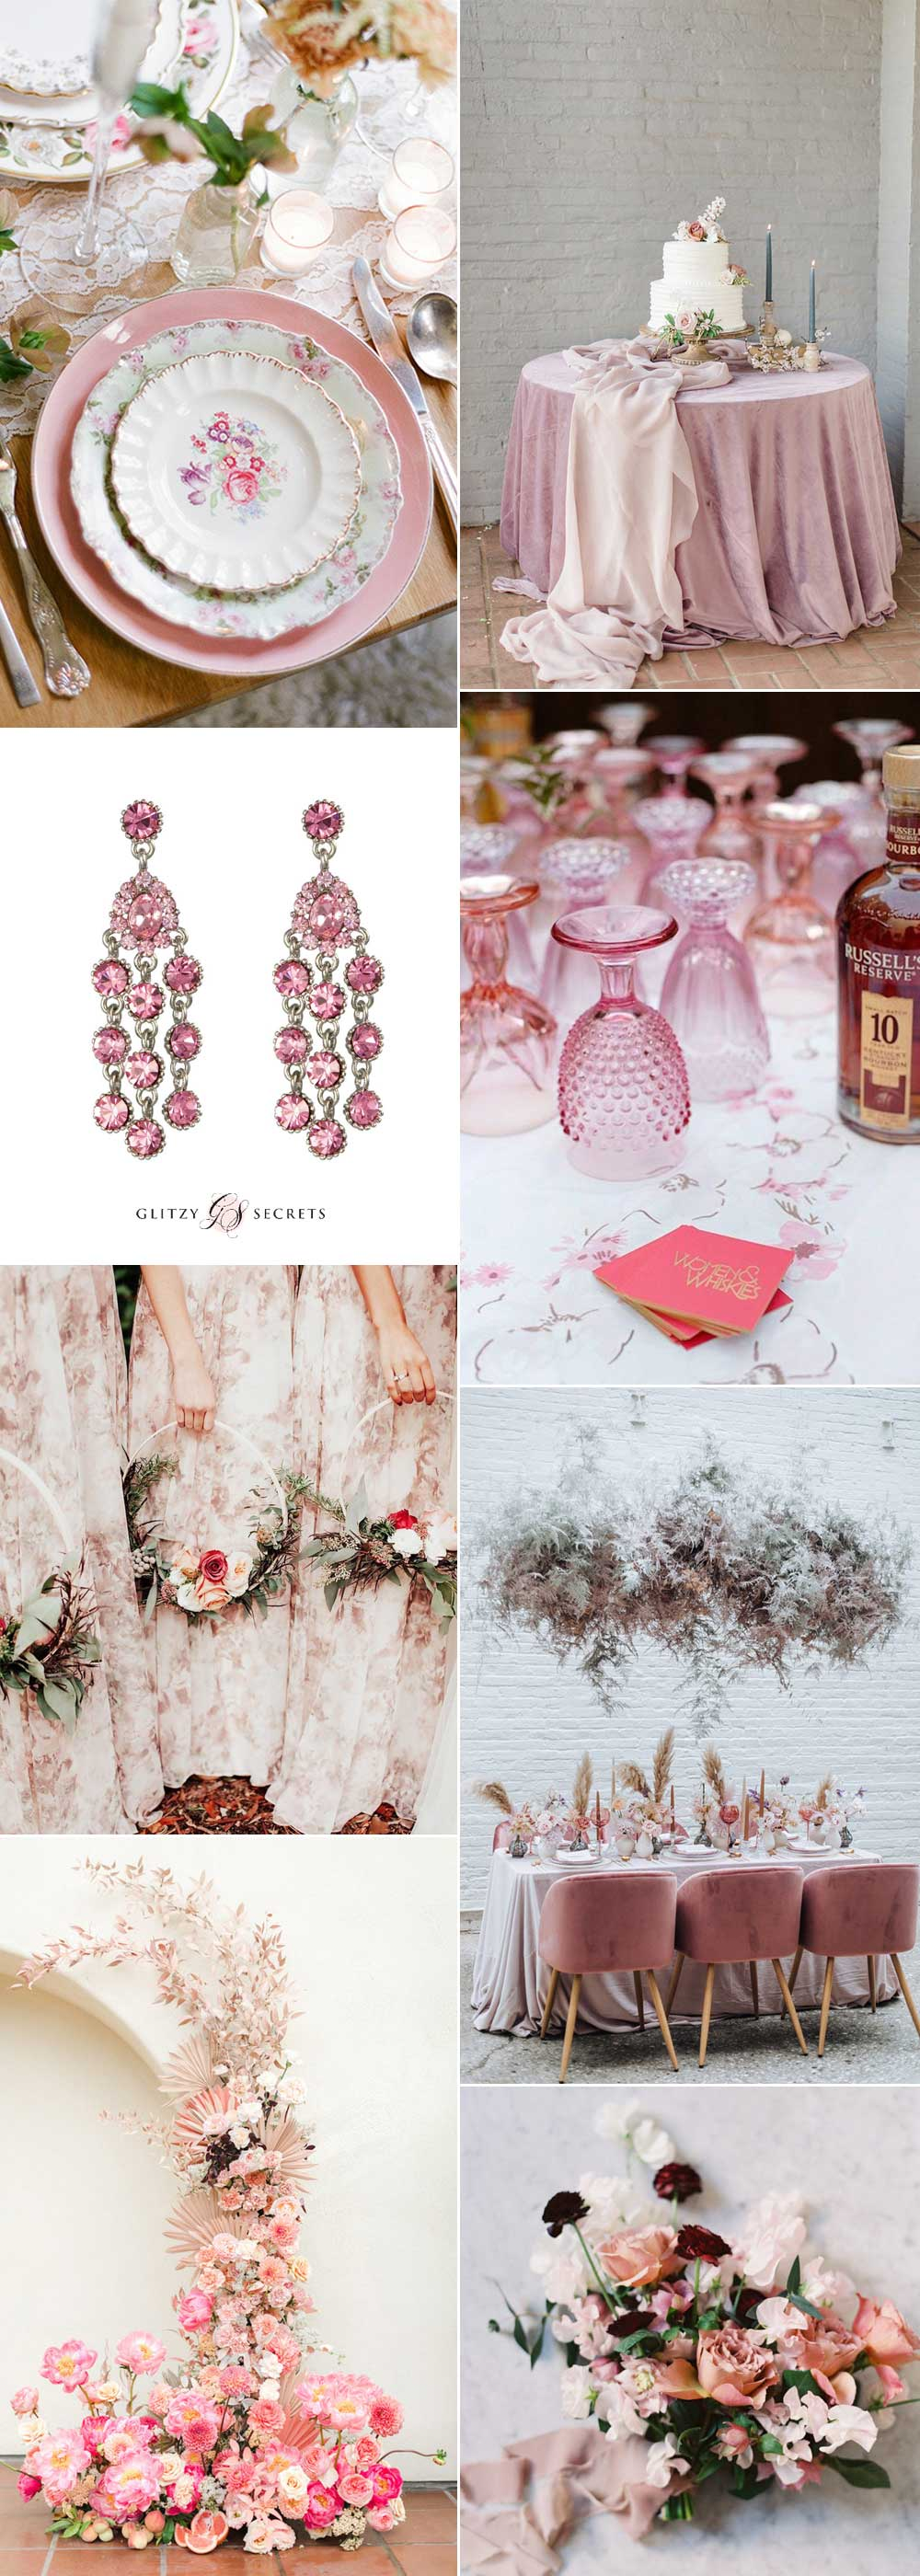 Inspiration using pink florals and vintage china for a spring wedding day